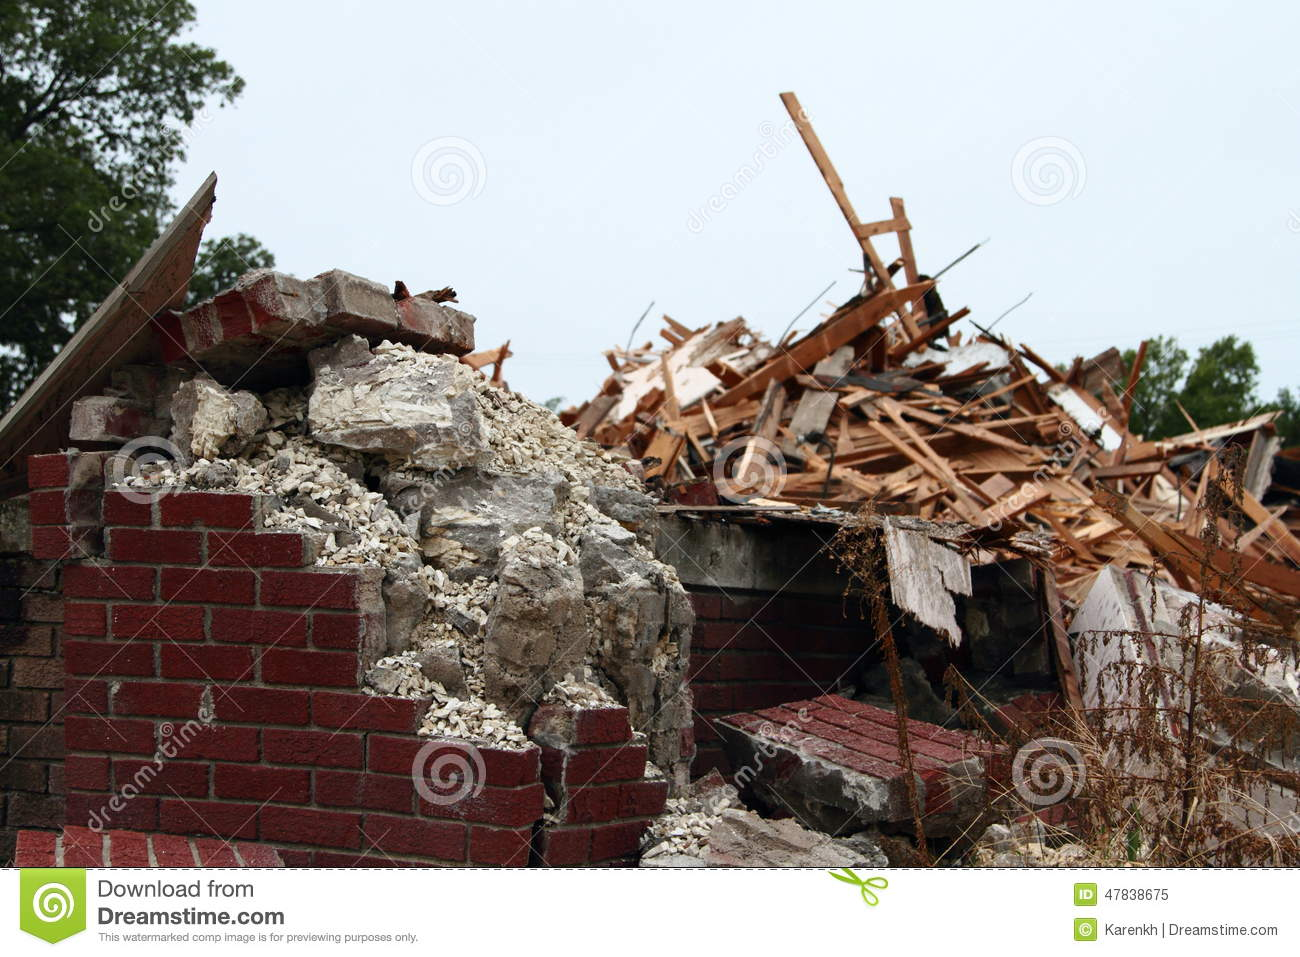 Building Falling Down : Crumbling concrete and falling down bricks with piles of